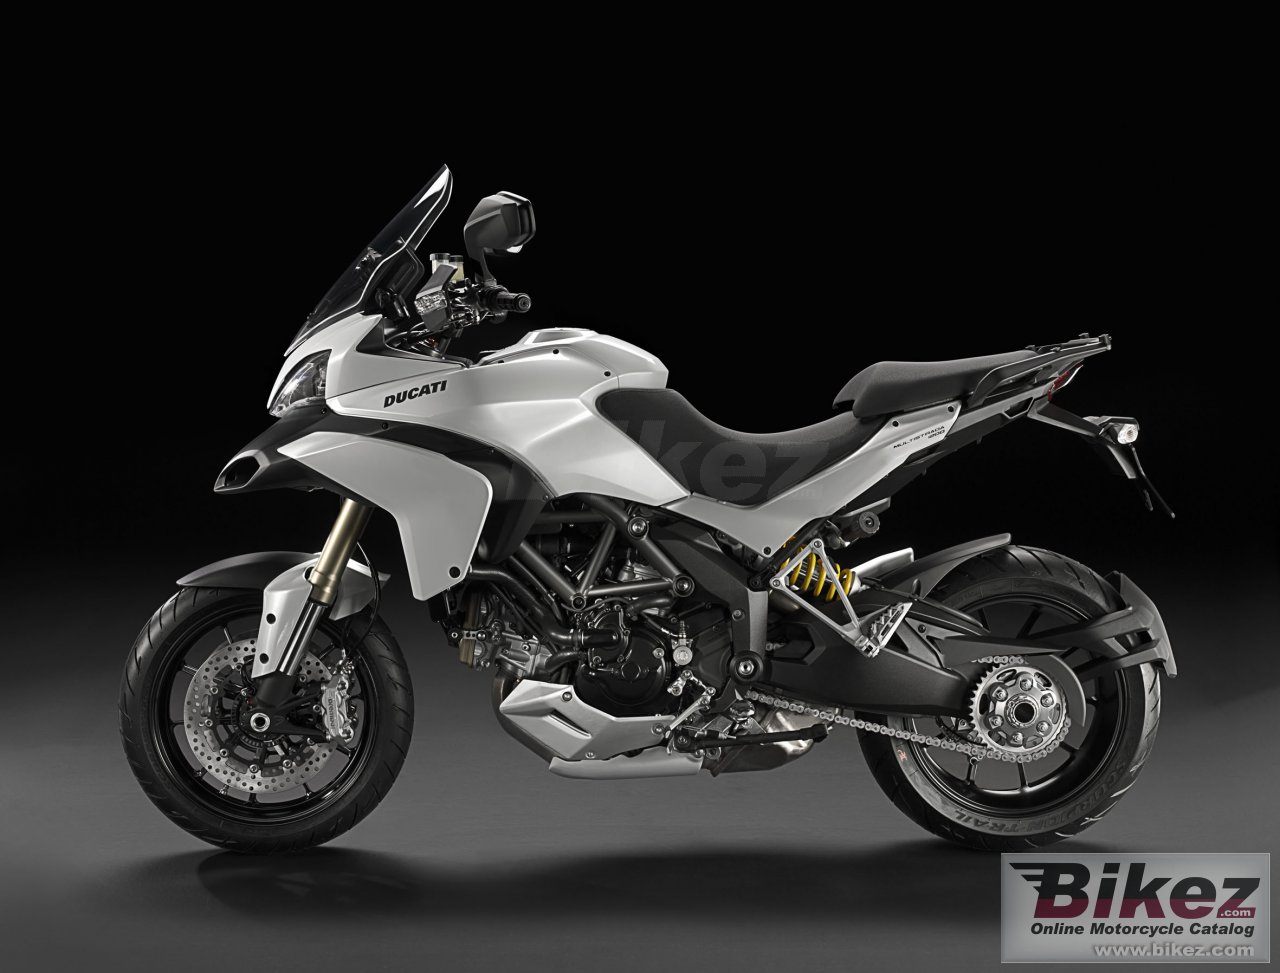 Big Ducati multistrada 1200 picture and wallpaper from Bikez.com